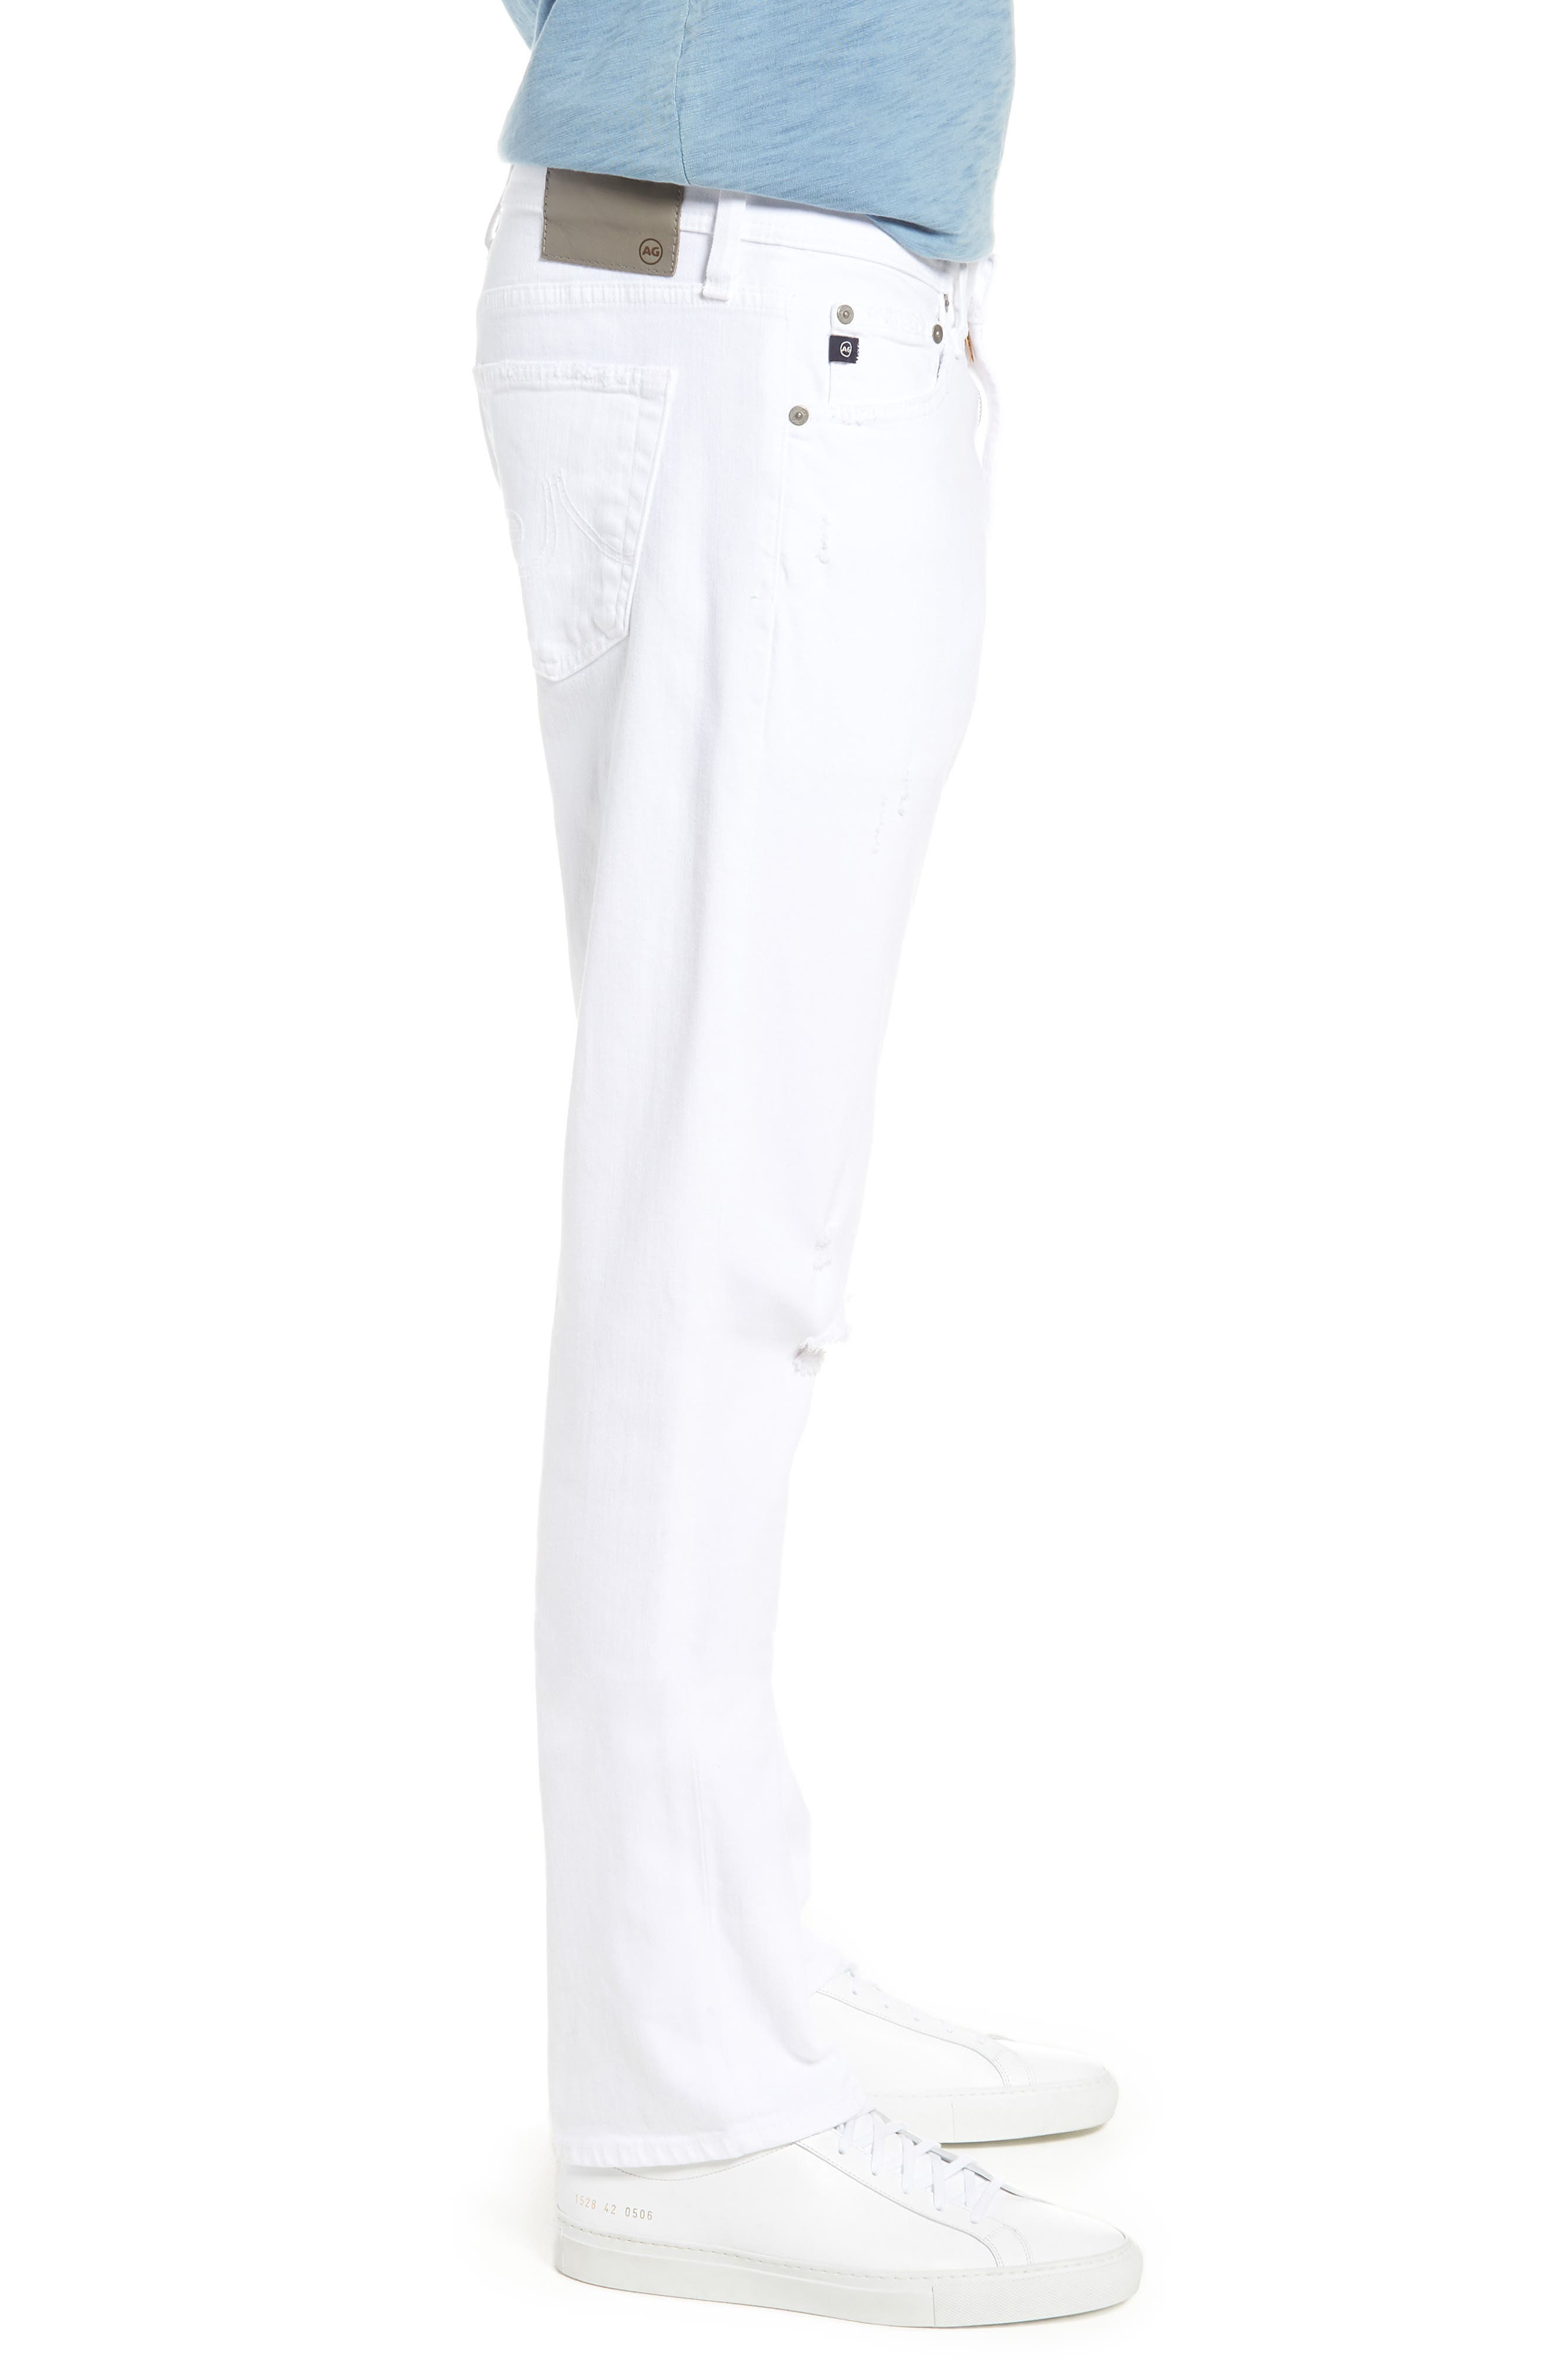 Everett Slim Straight Leg Jeans,                             Alternate thumbnail 3, color,                             White Crash